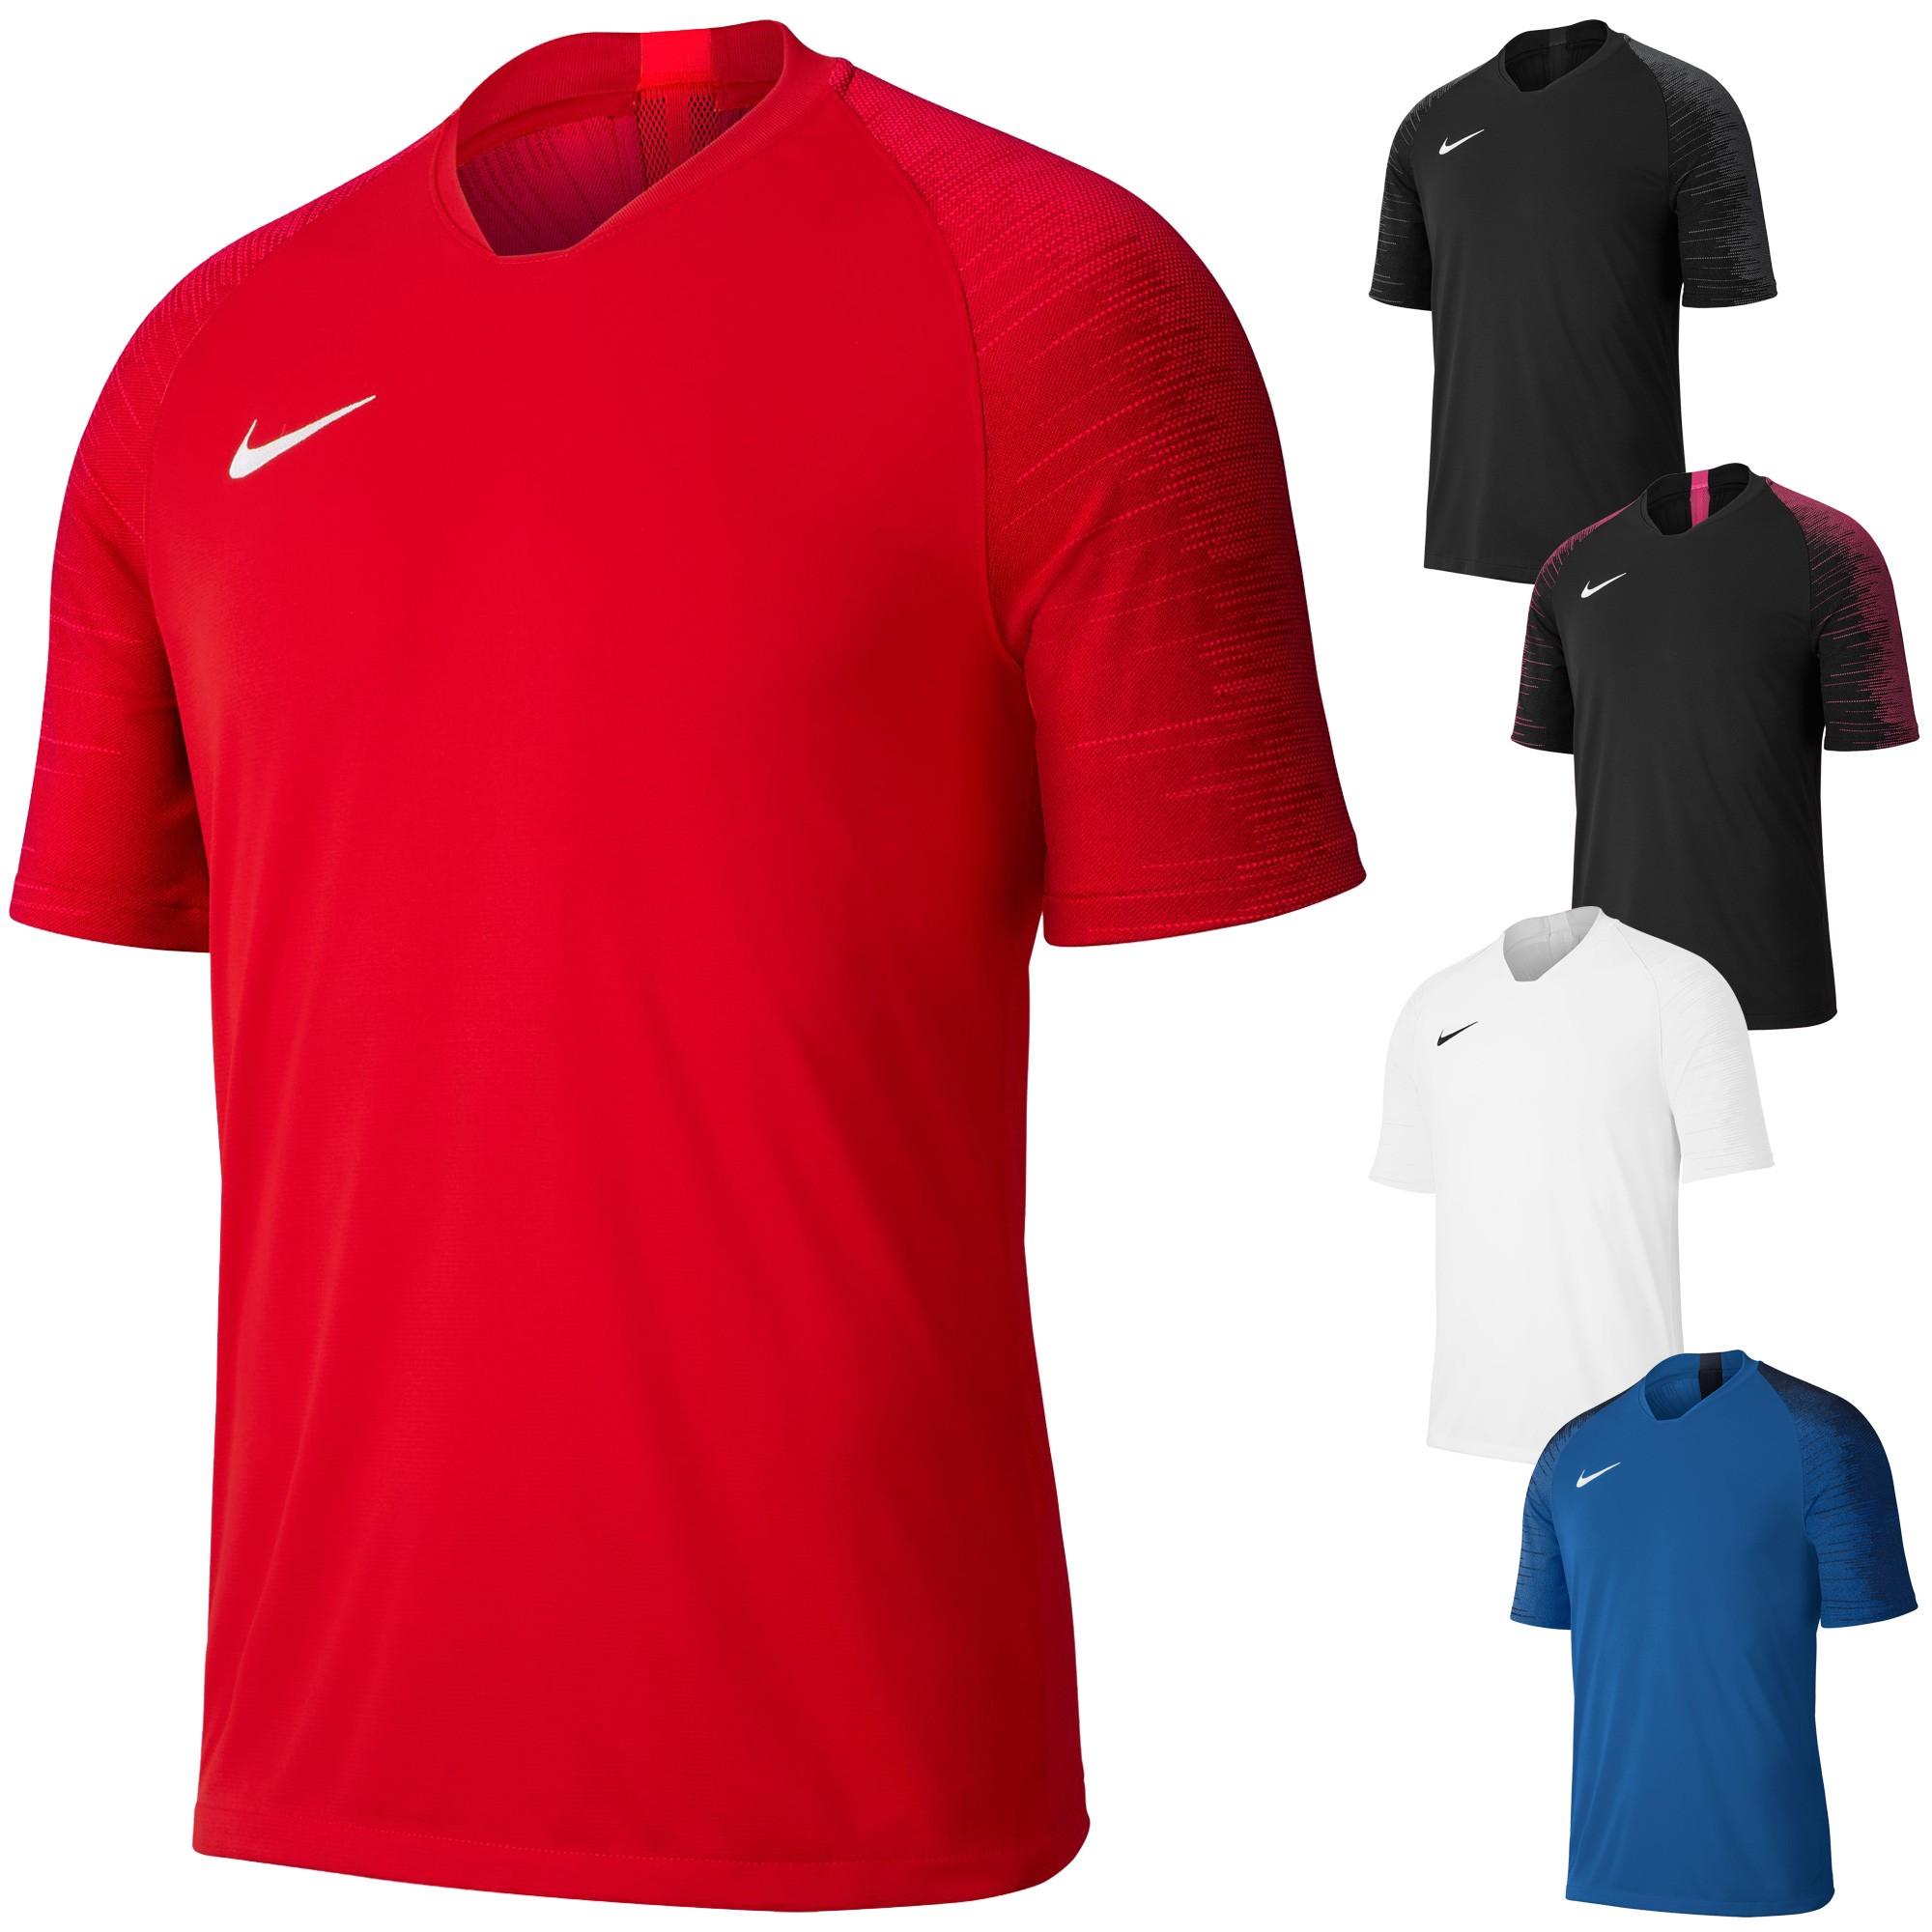 maillot nike rouge et blanc